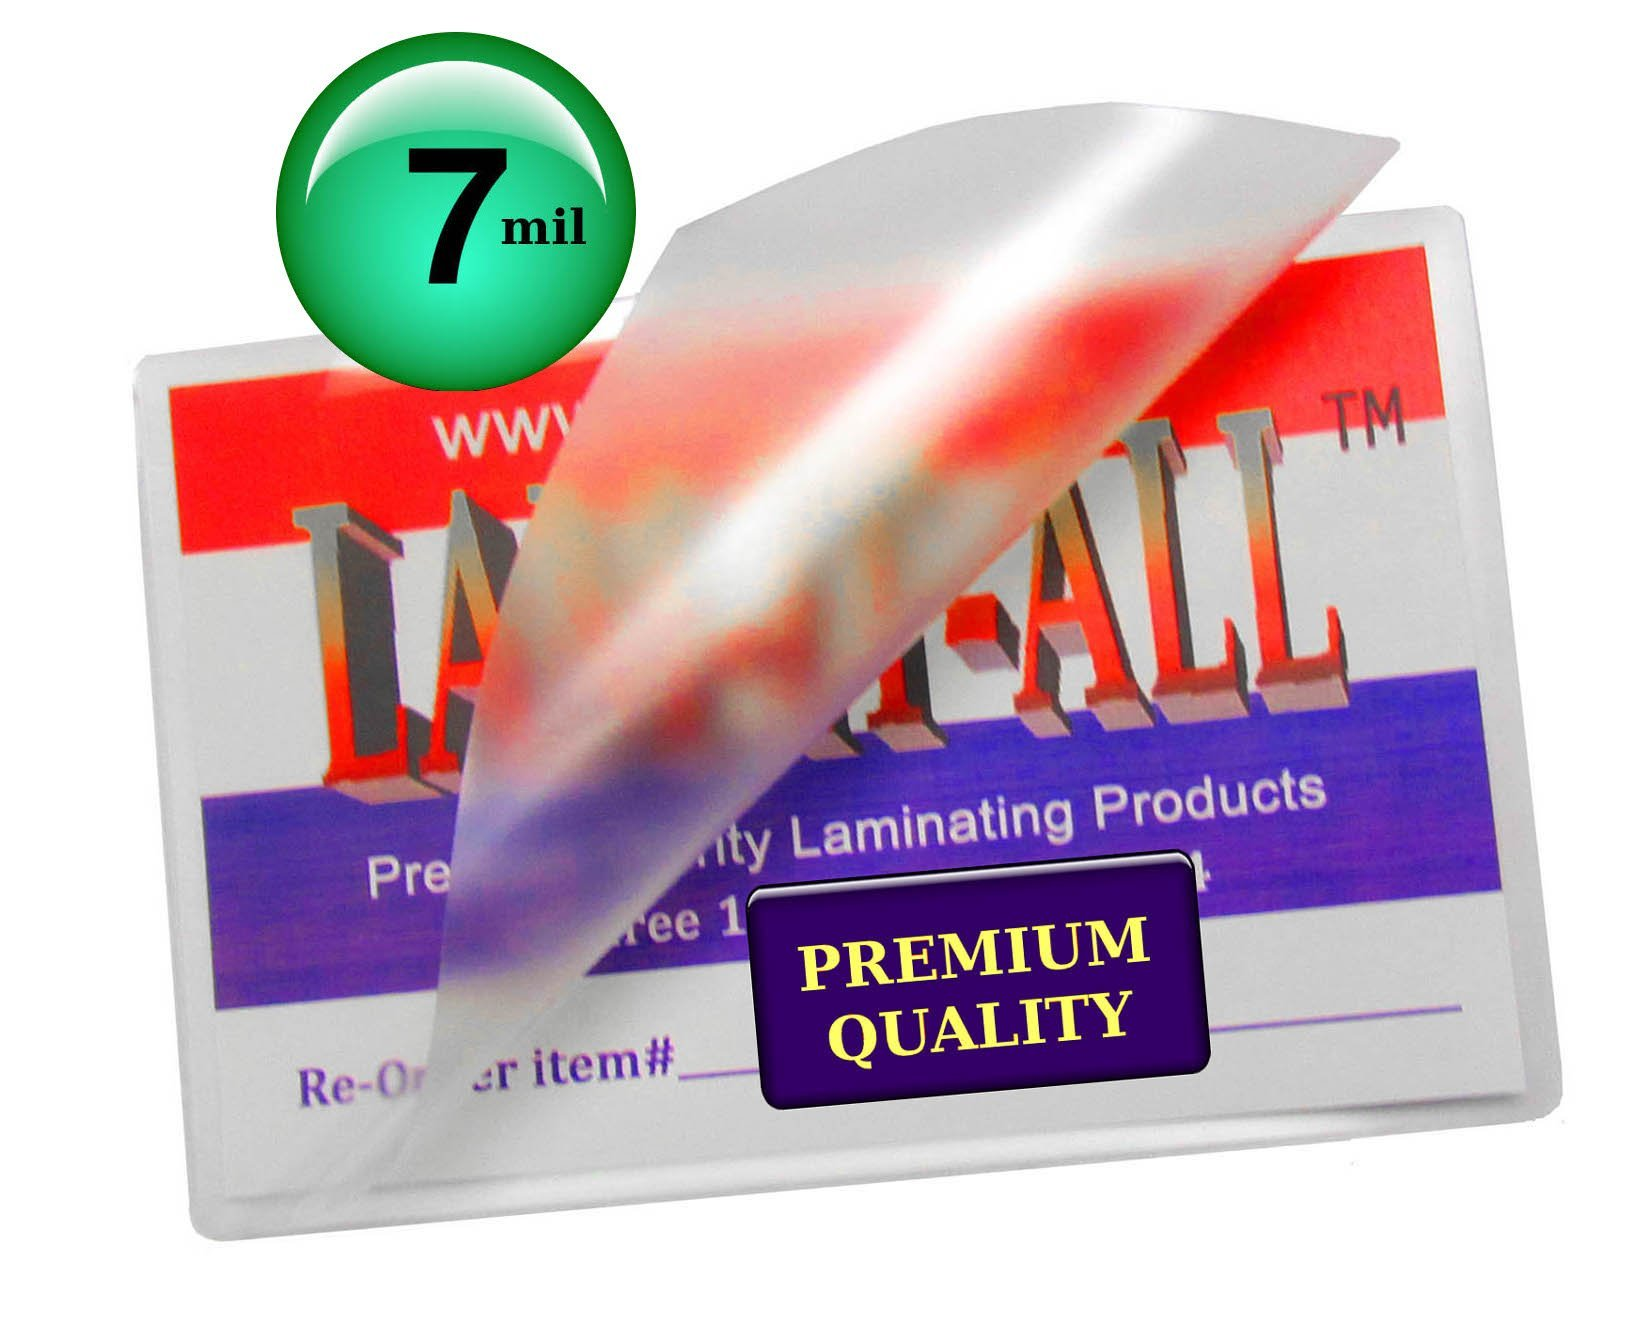 7 Mil Business Card Hot Laminating Pouches 2-1/4 x 3-3/4 [Pack of 100] Clear by LAM-IT-ALL